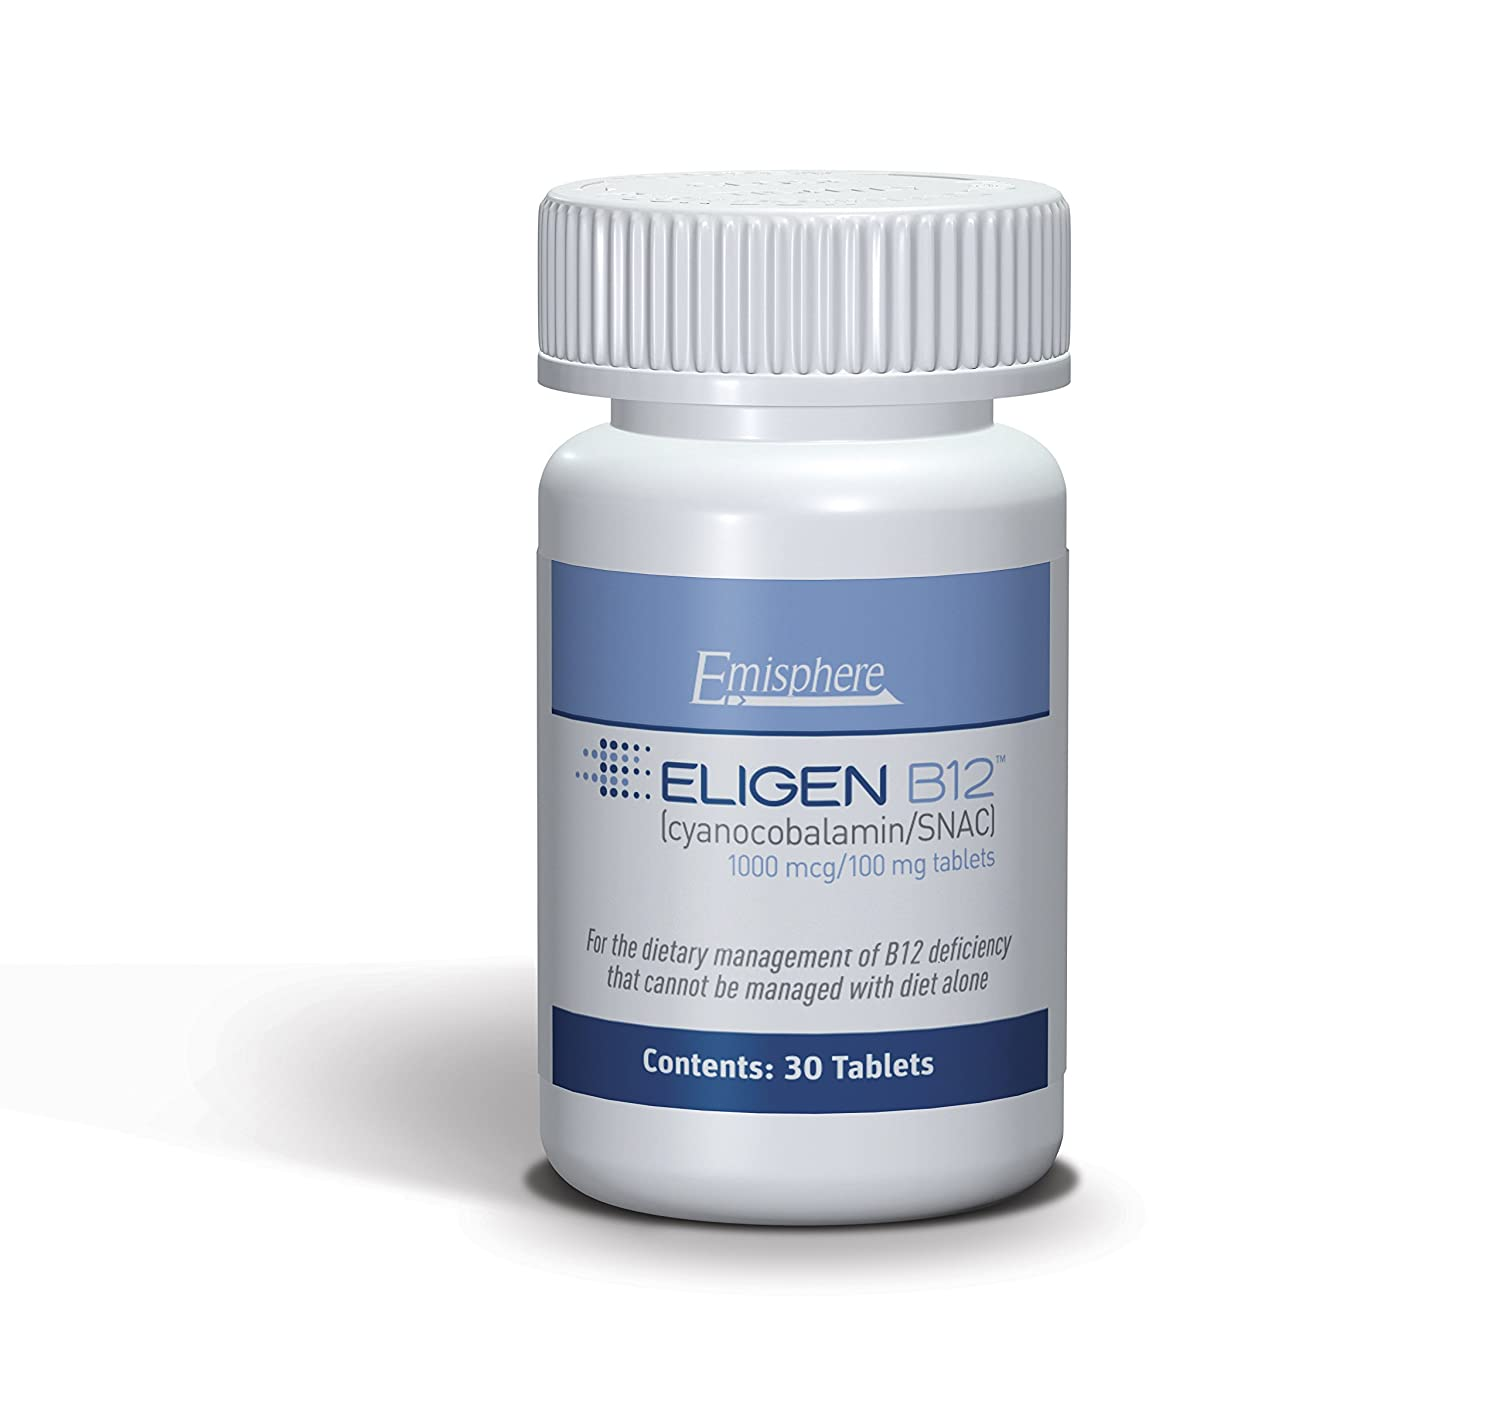 Eligen B12 Reviews